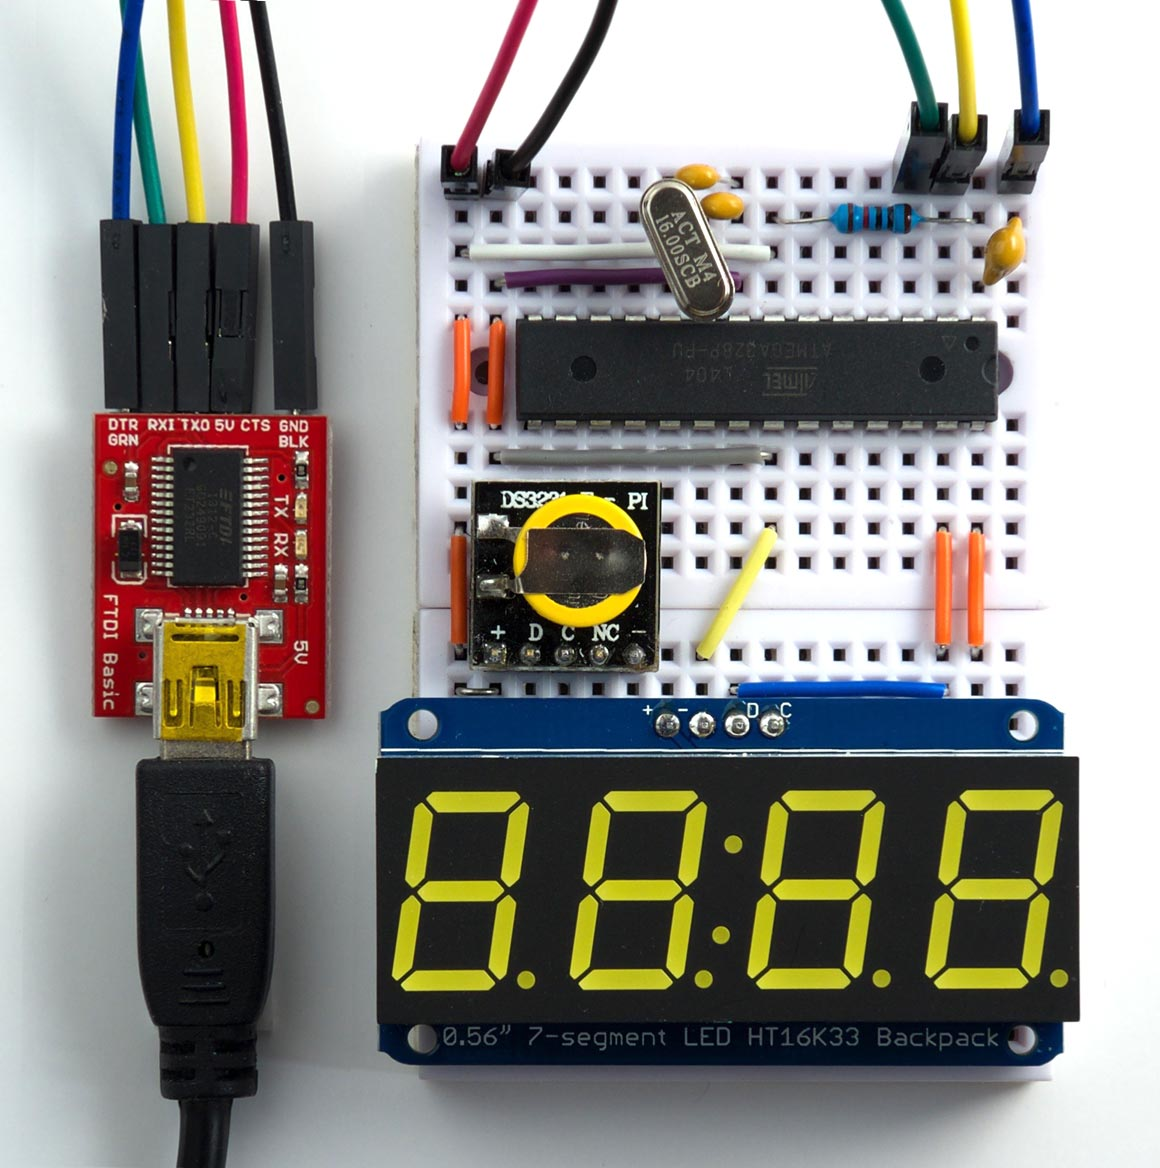 Technoblogy Digital Clock Using Lisp 7 Segment Circuit Diagram Connecting The To Arduino Ide Via An Ftdi Usb Serial Converter